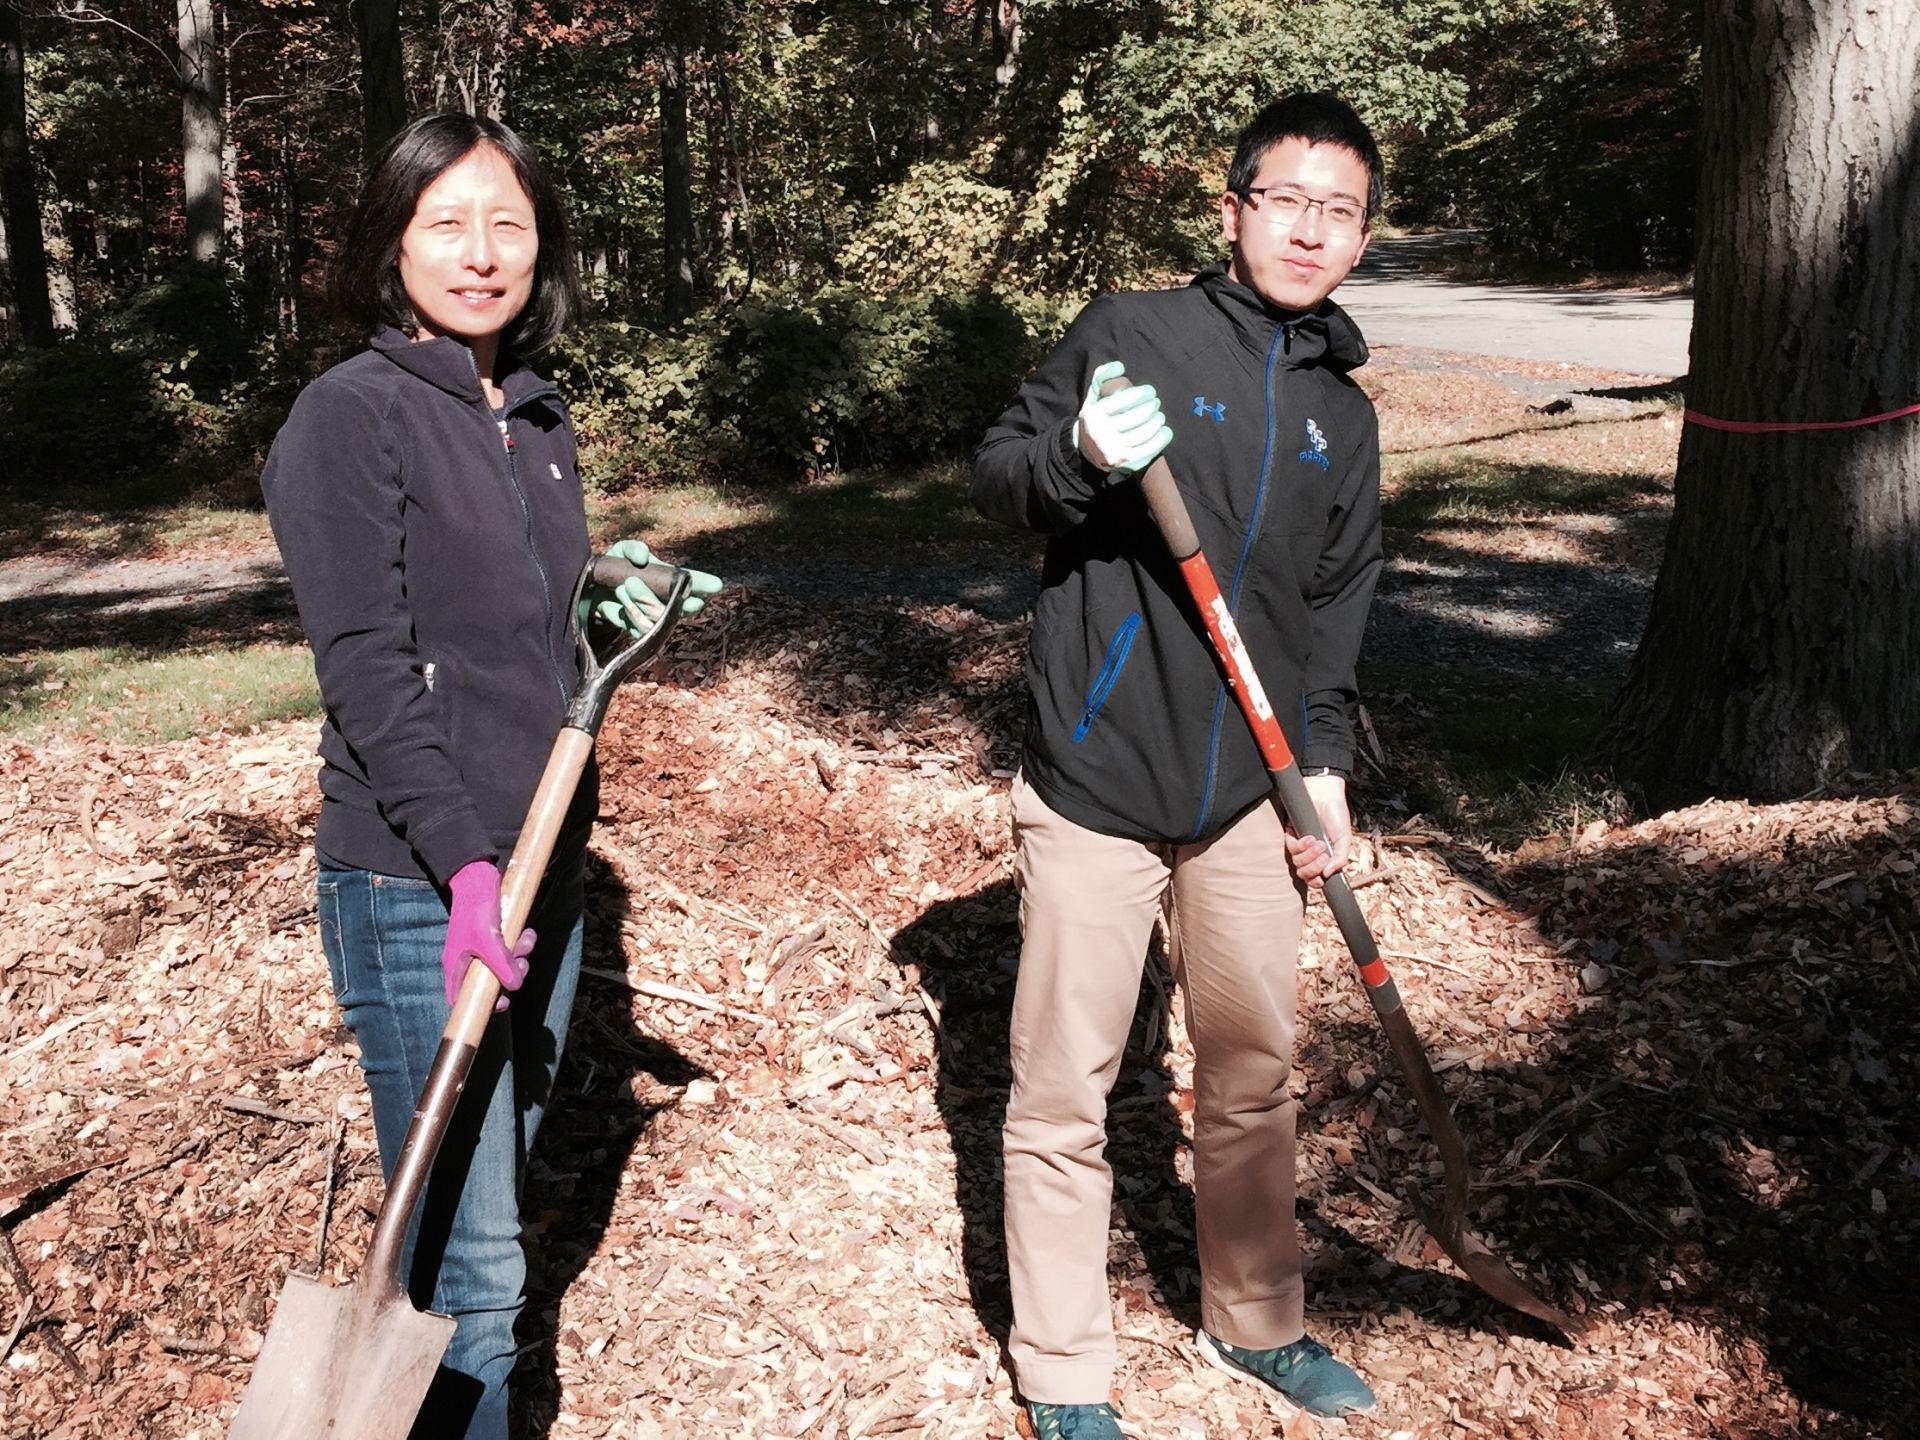 International student parent Lisa Zhang (mother of Yongjia Hou, not pictured) and junior Yuheng Chen take a break from work on a school service trip.